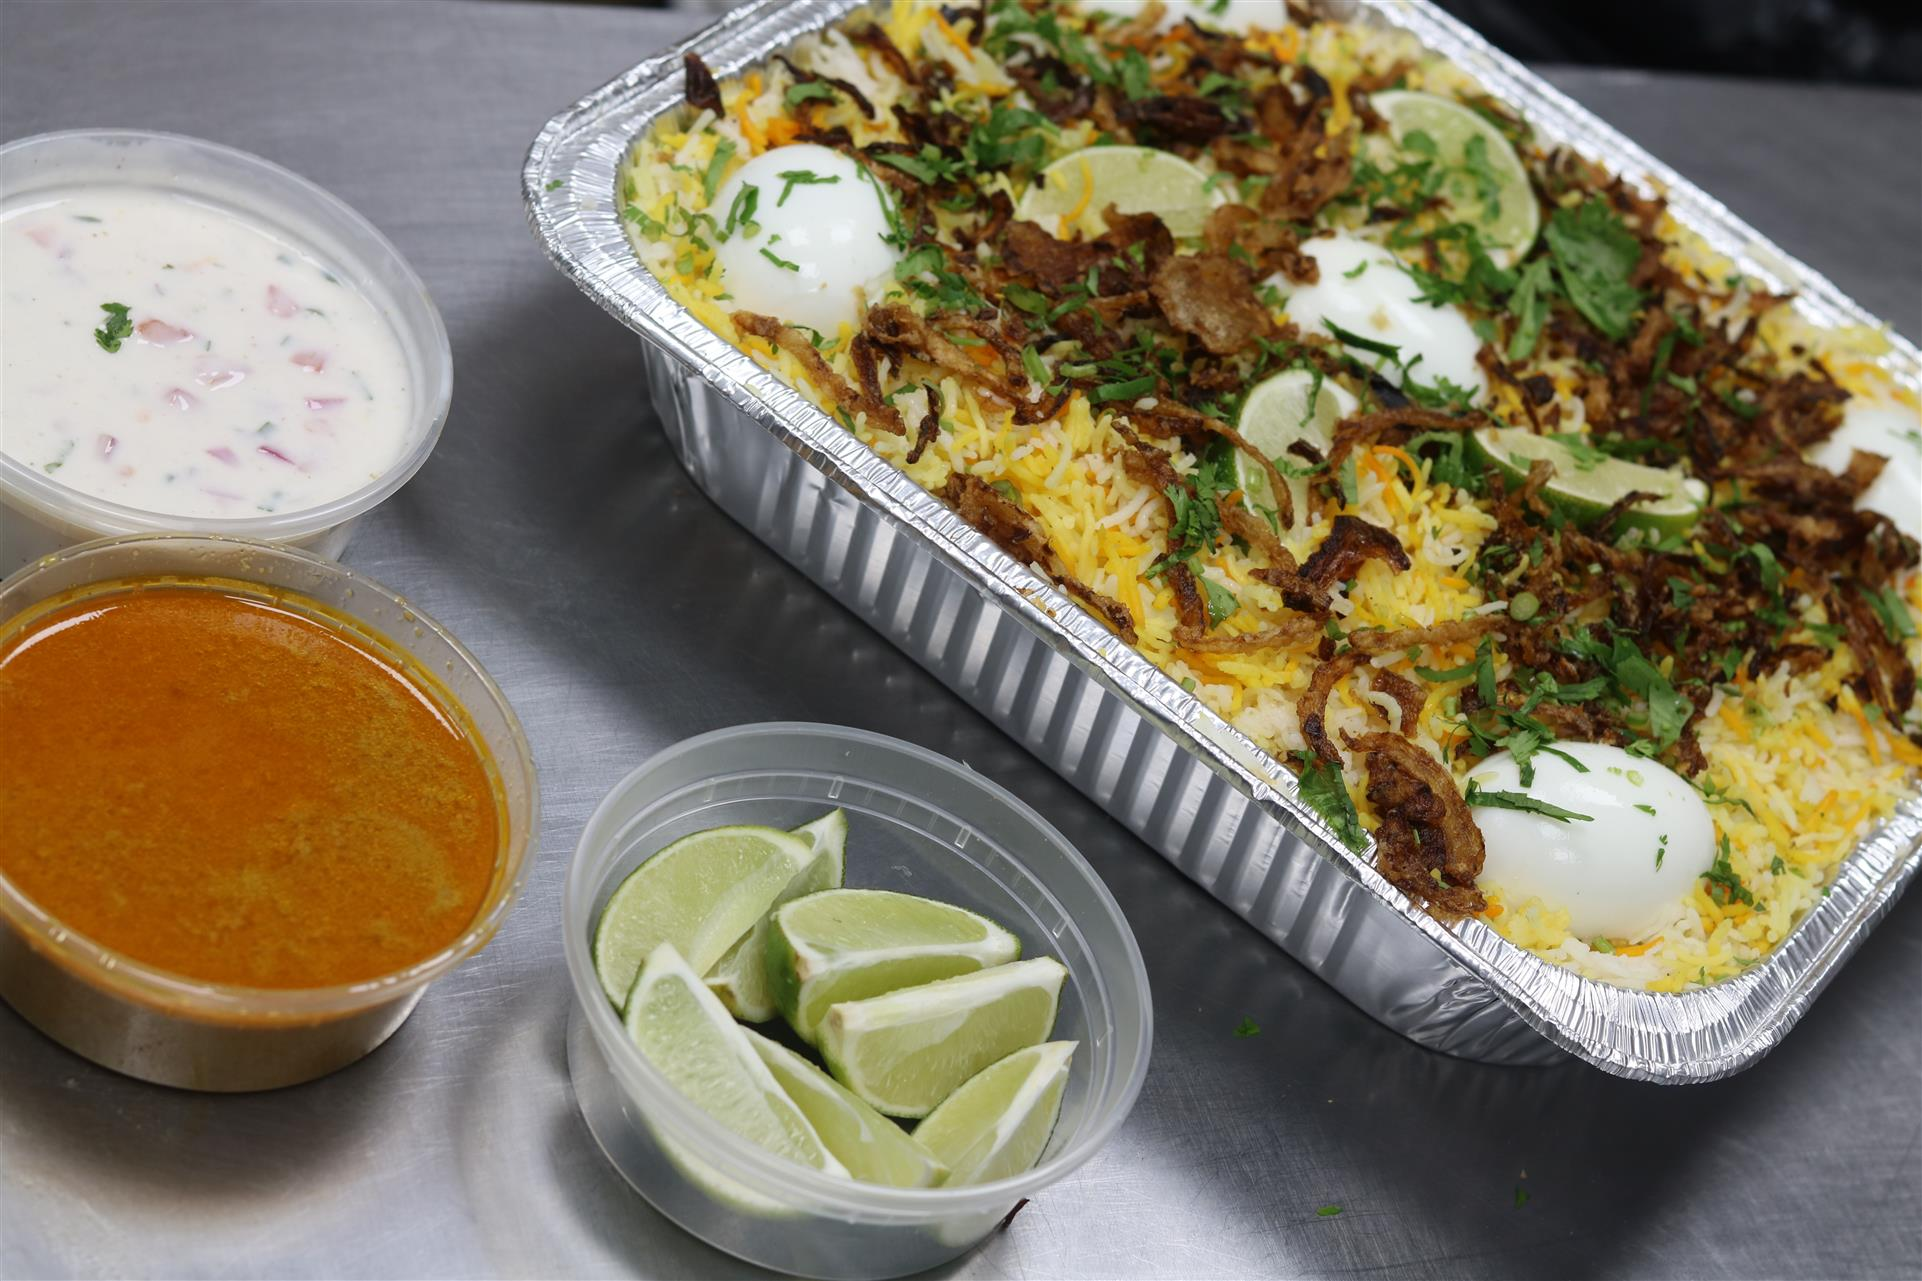 biryani tray with sauces and limes